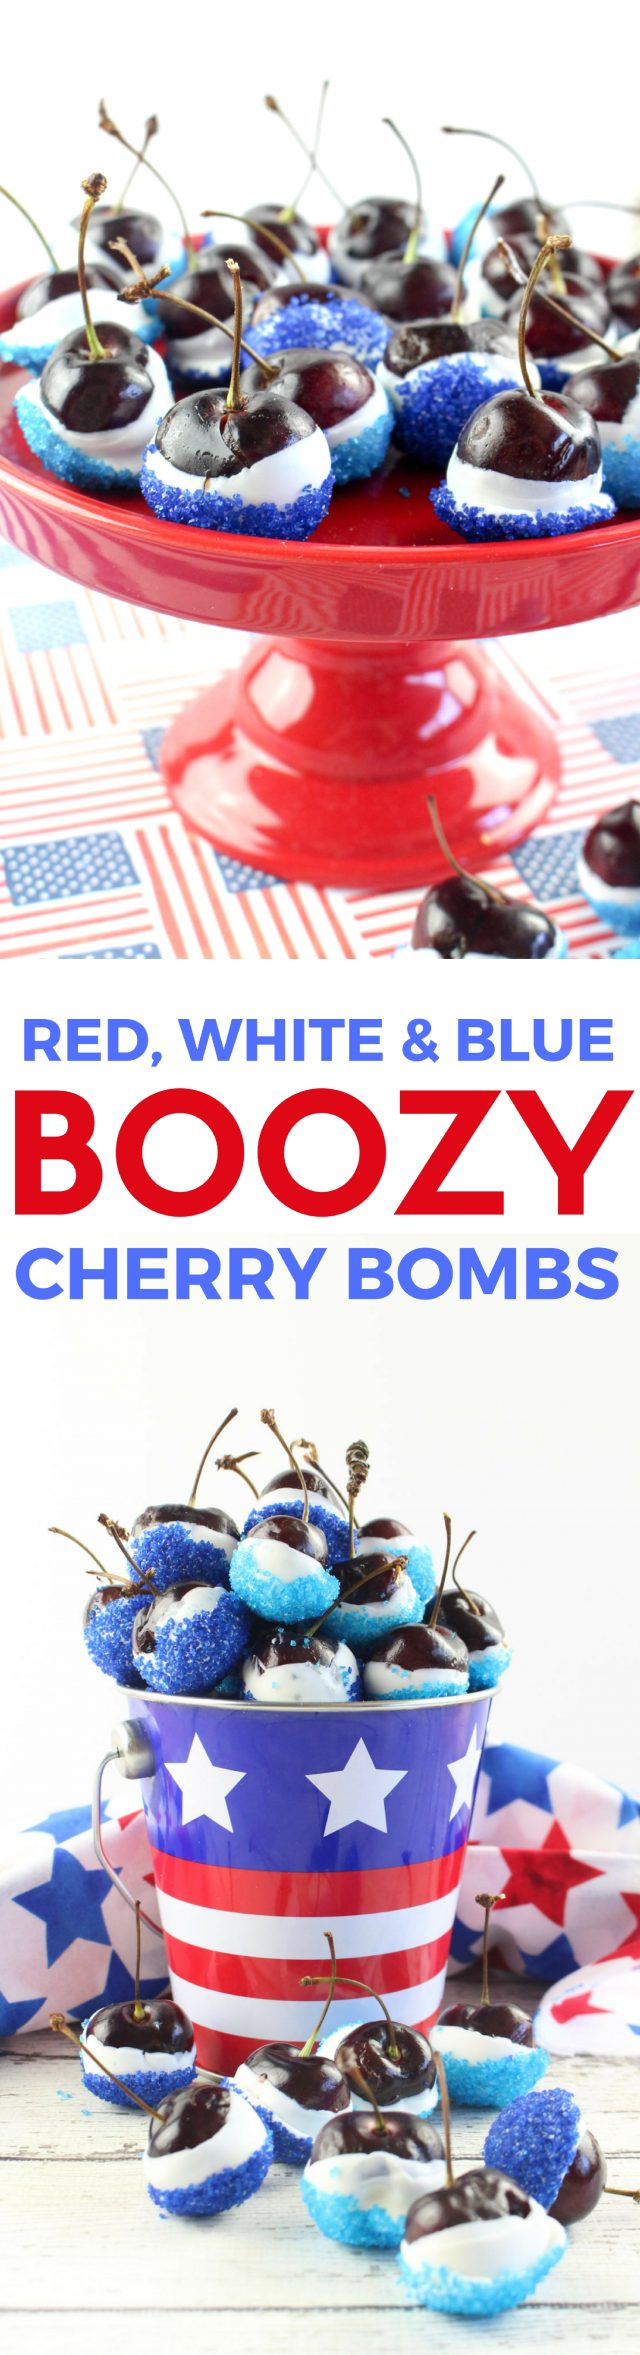 Red, White & Blue Boozy Cherry Bombs Recipe for July 4th! It involves cherries soaked in vodka, friends.